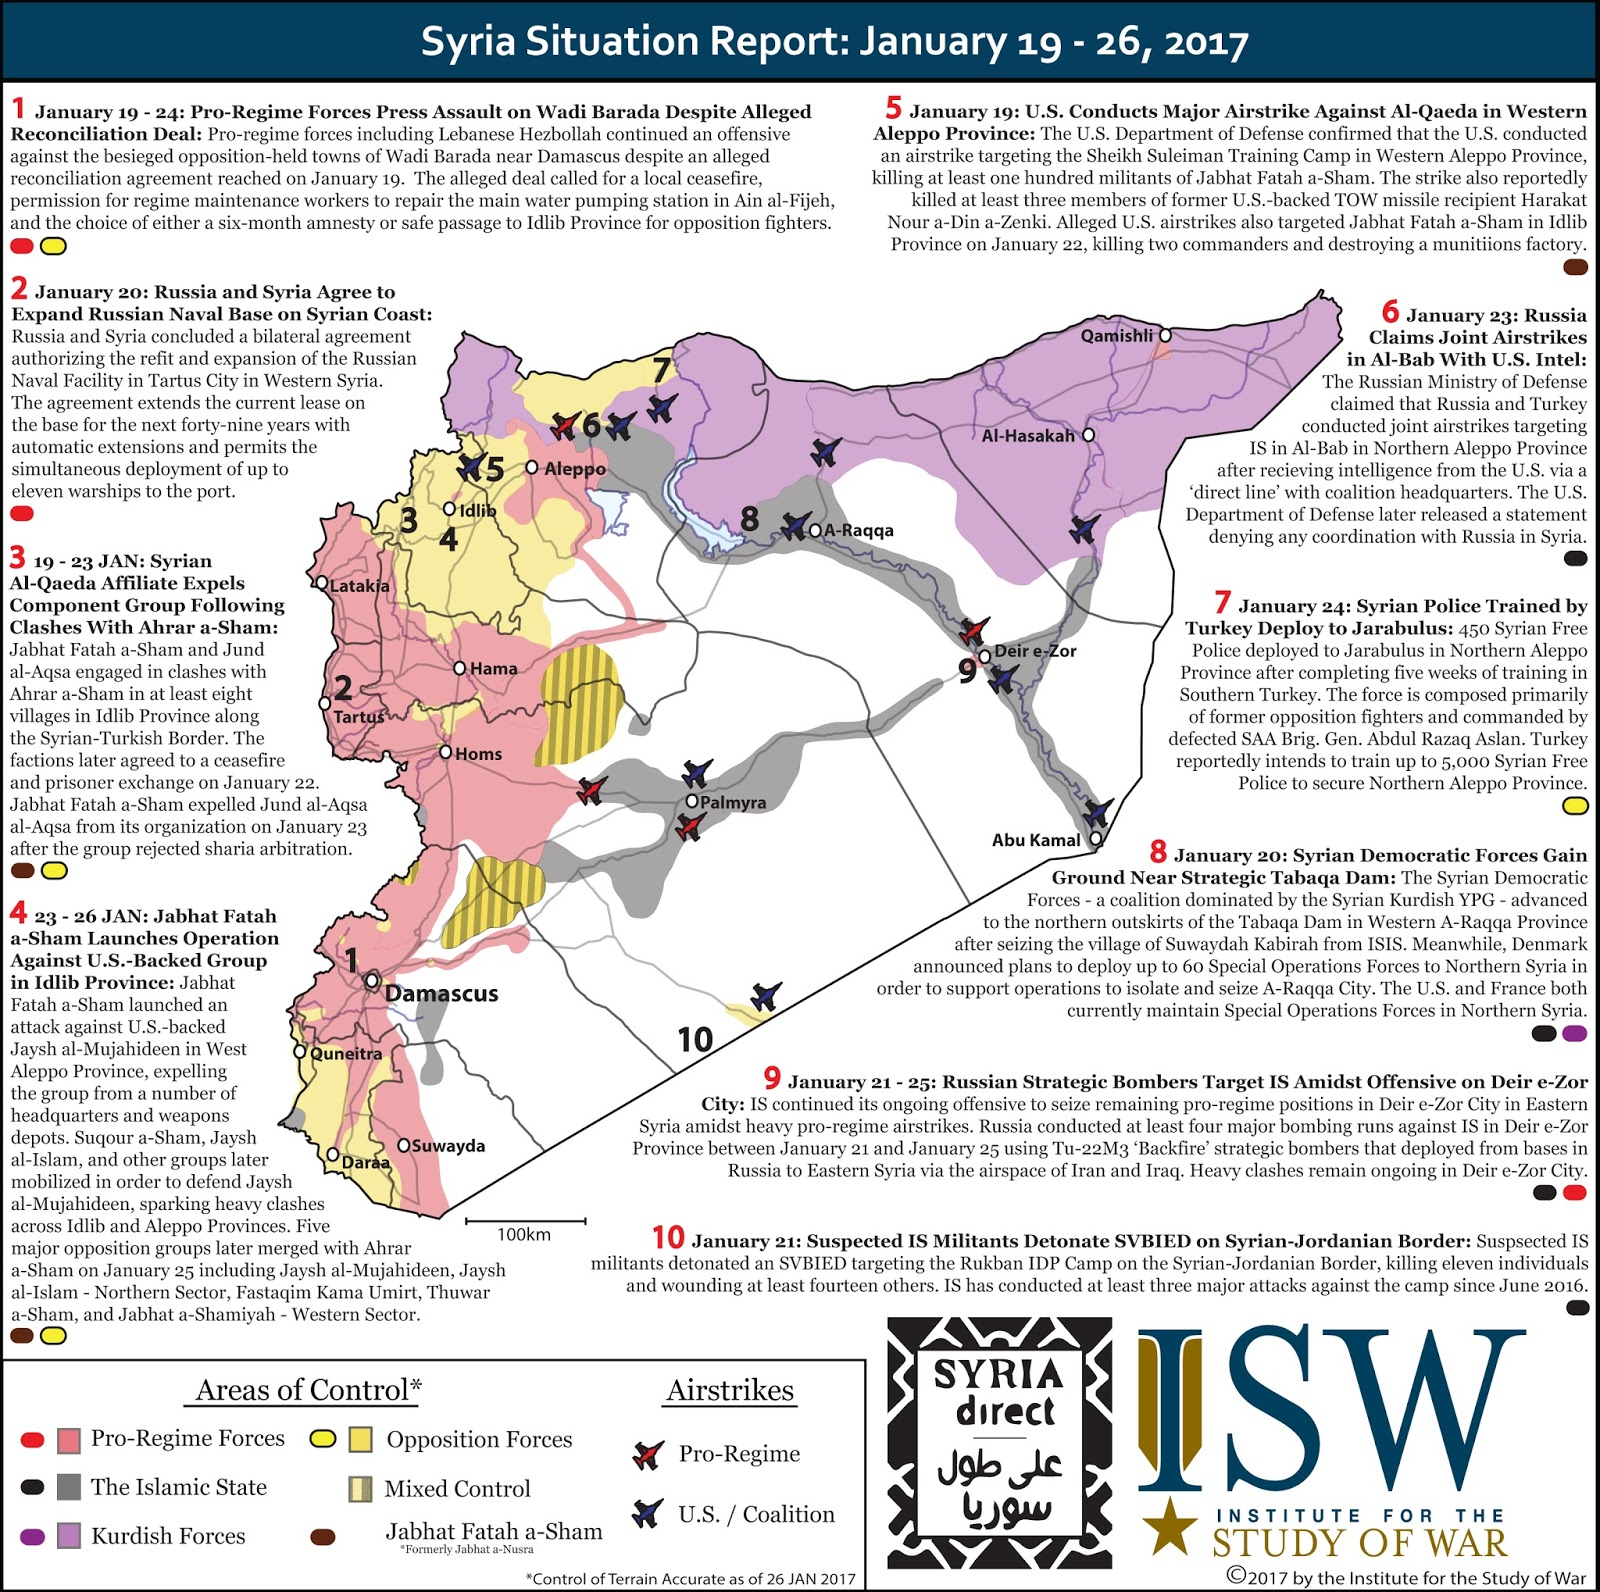 Eye On The World Syria Situation Report January 19 26 2017 Meccanism Long Syiria Exact Mechanism Or Time Frame For Implementing These Guarantees Remains Unclear Even As Un Prepares To Host Regime And Opposition New Round